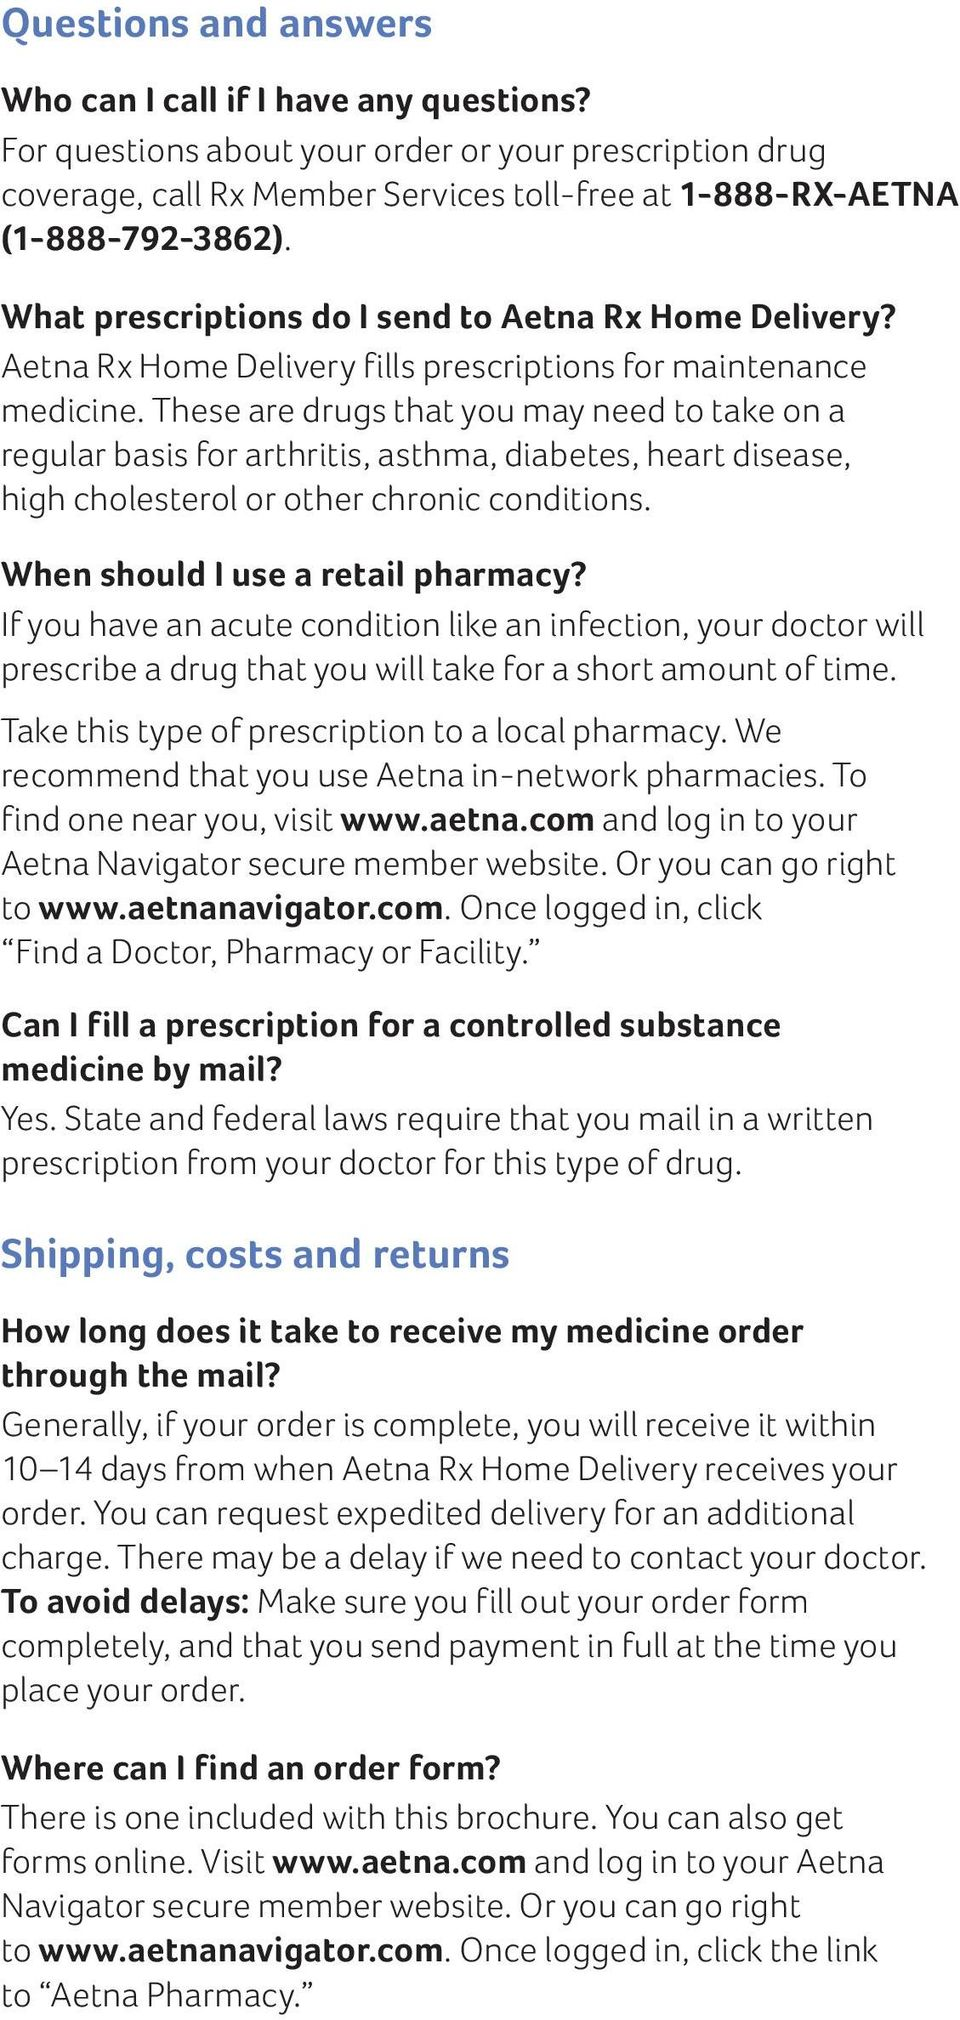 These are drugs that you may need to take on a regular basis for arthritis, asthma, diabetes, heart disease, high cholesterol or other chronic conditions. When should I use a retail pharmacy?